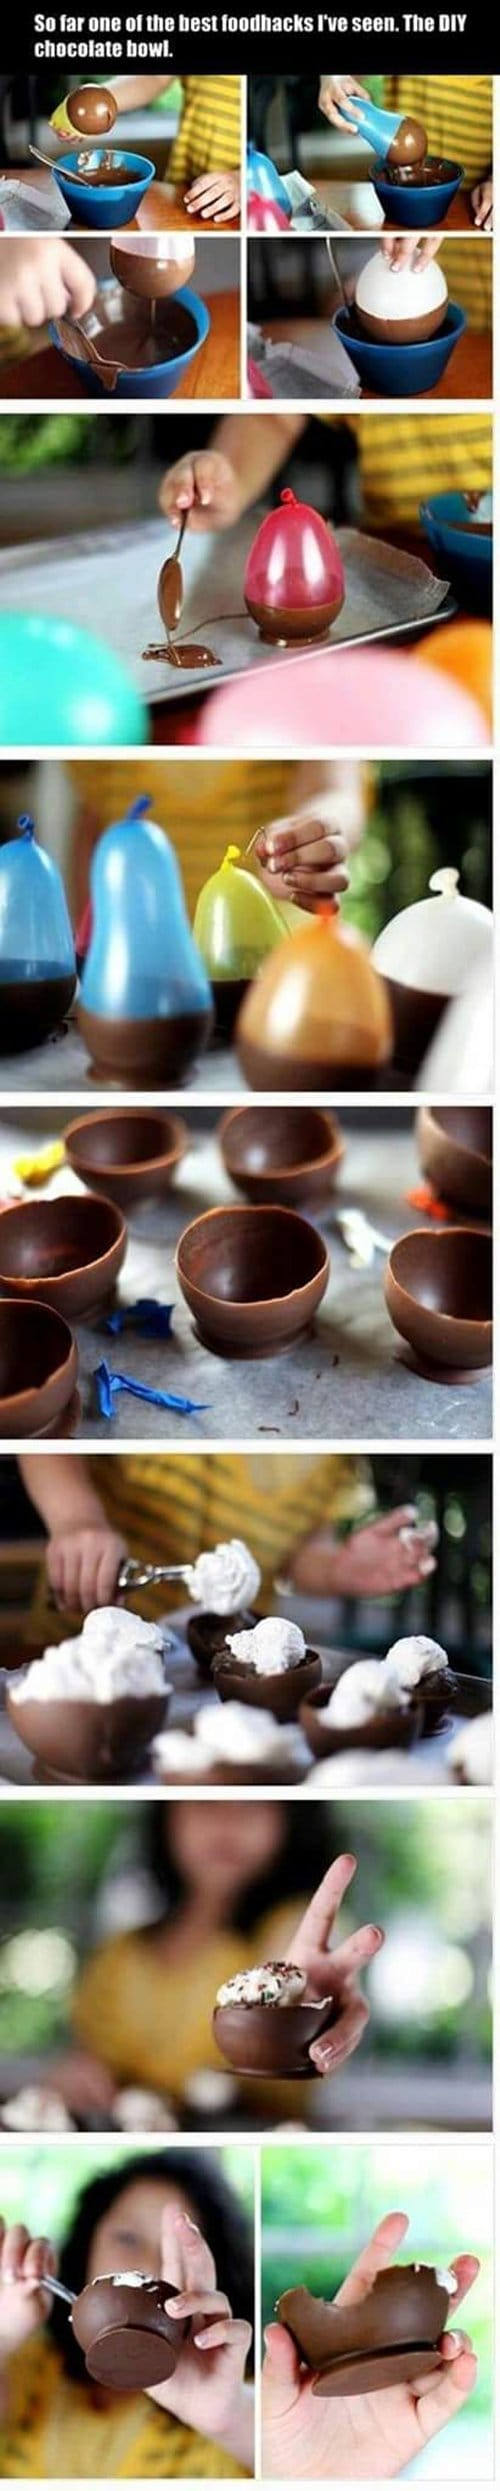 life-hacks-melted-chocolate-bowls